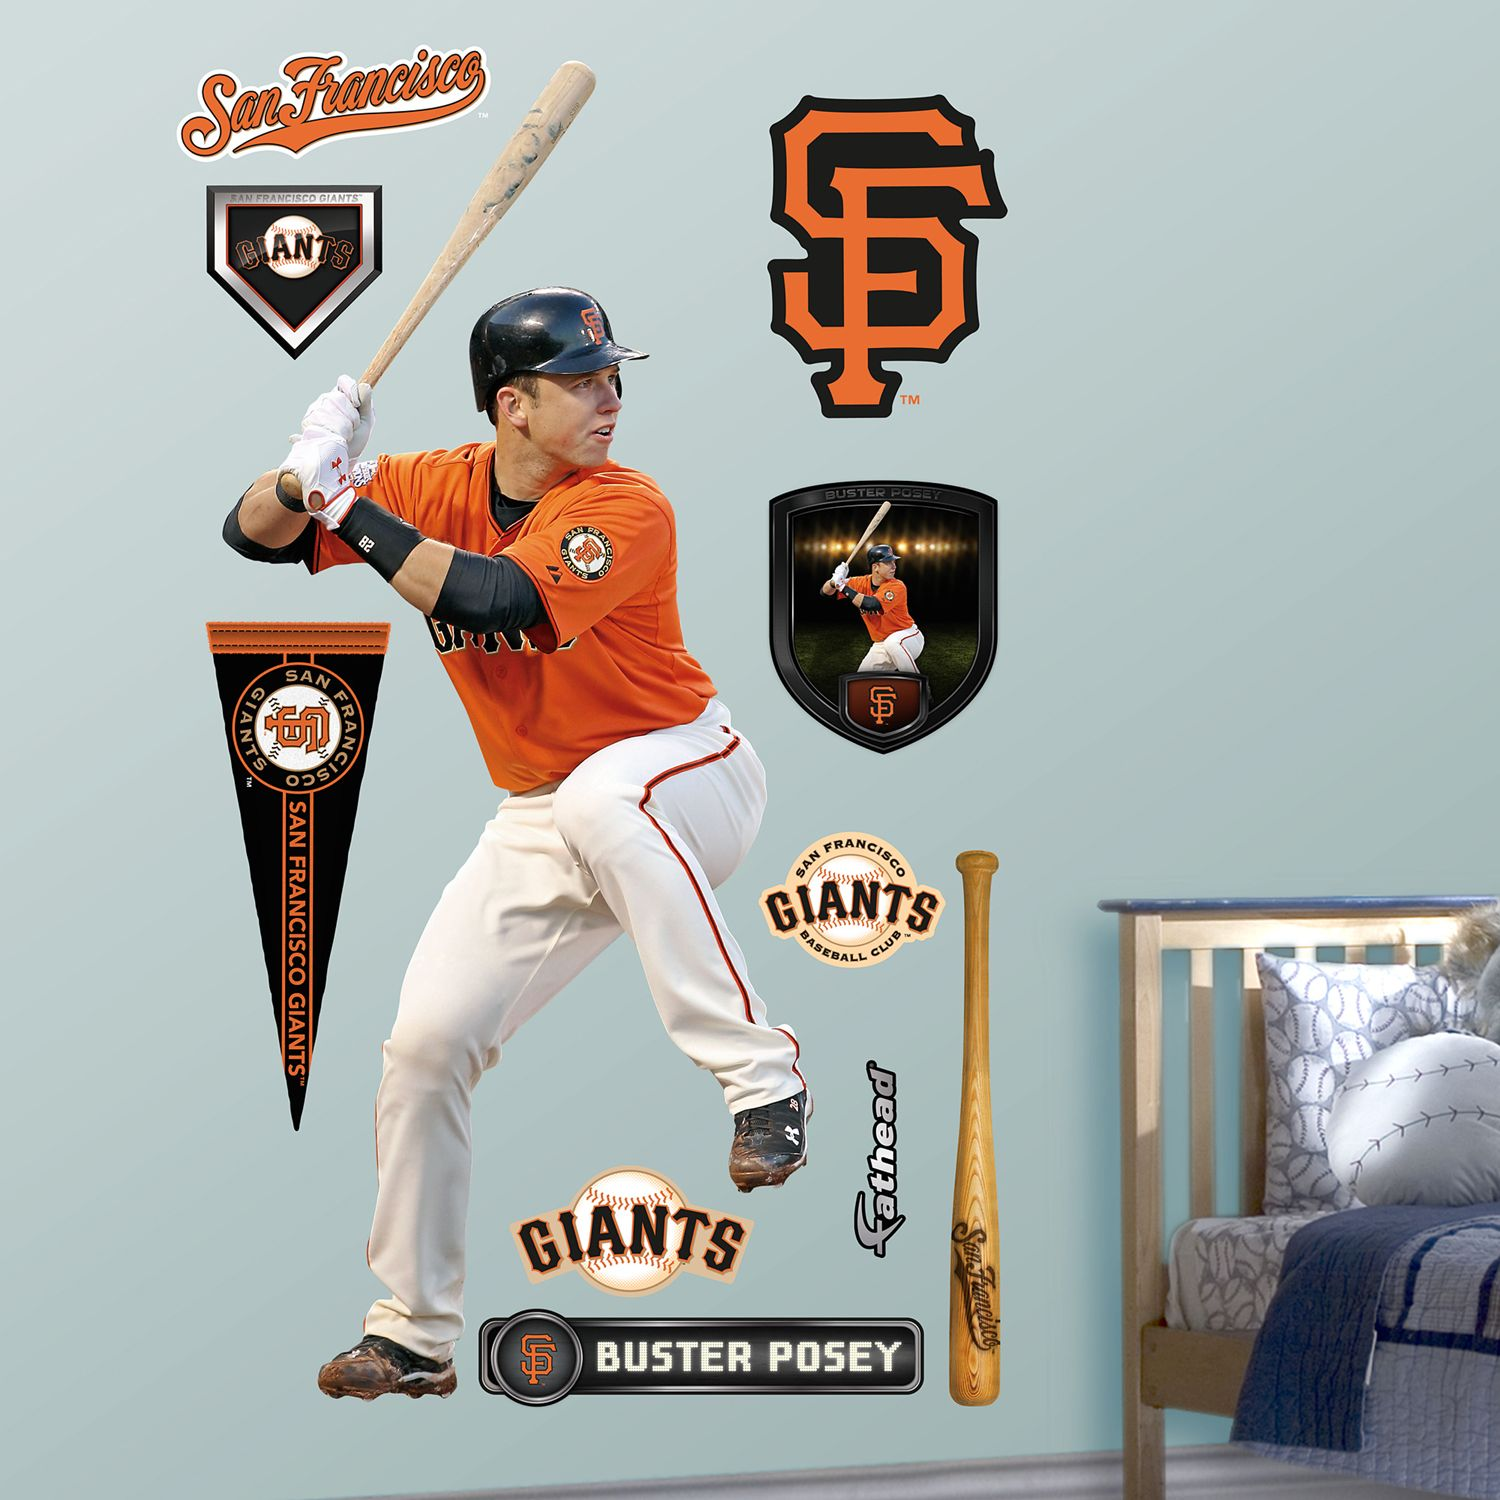 Nfl Fatheads Wall Stickers San Francisco Giants Buster Posey Wall Decals